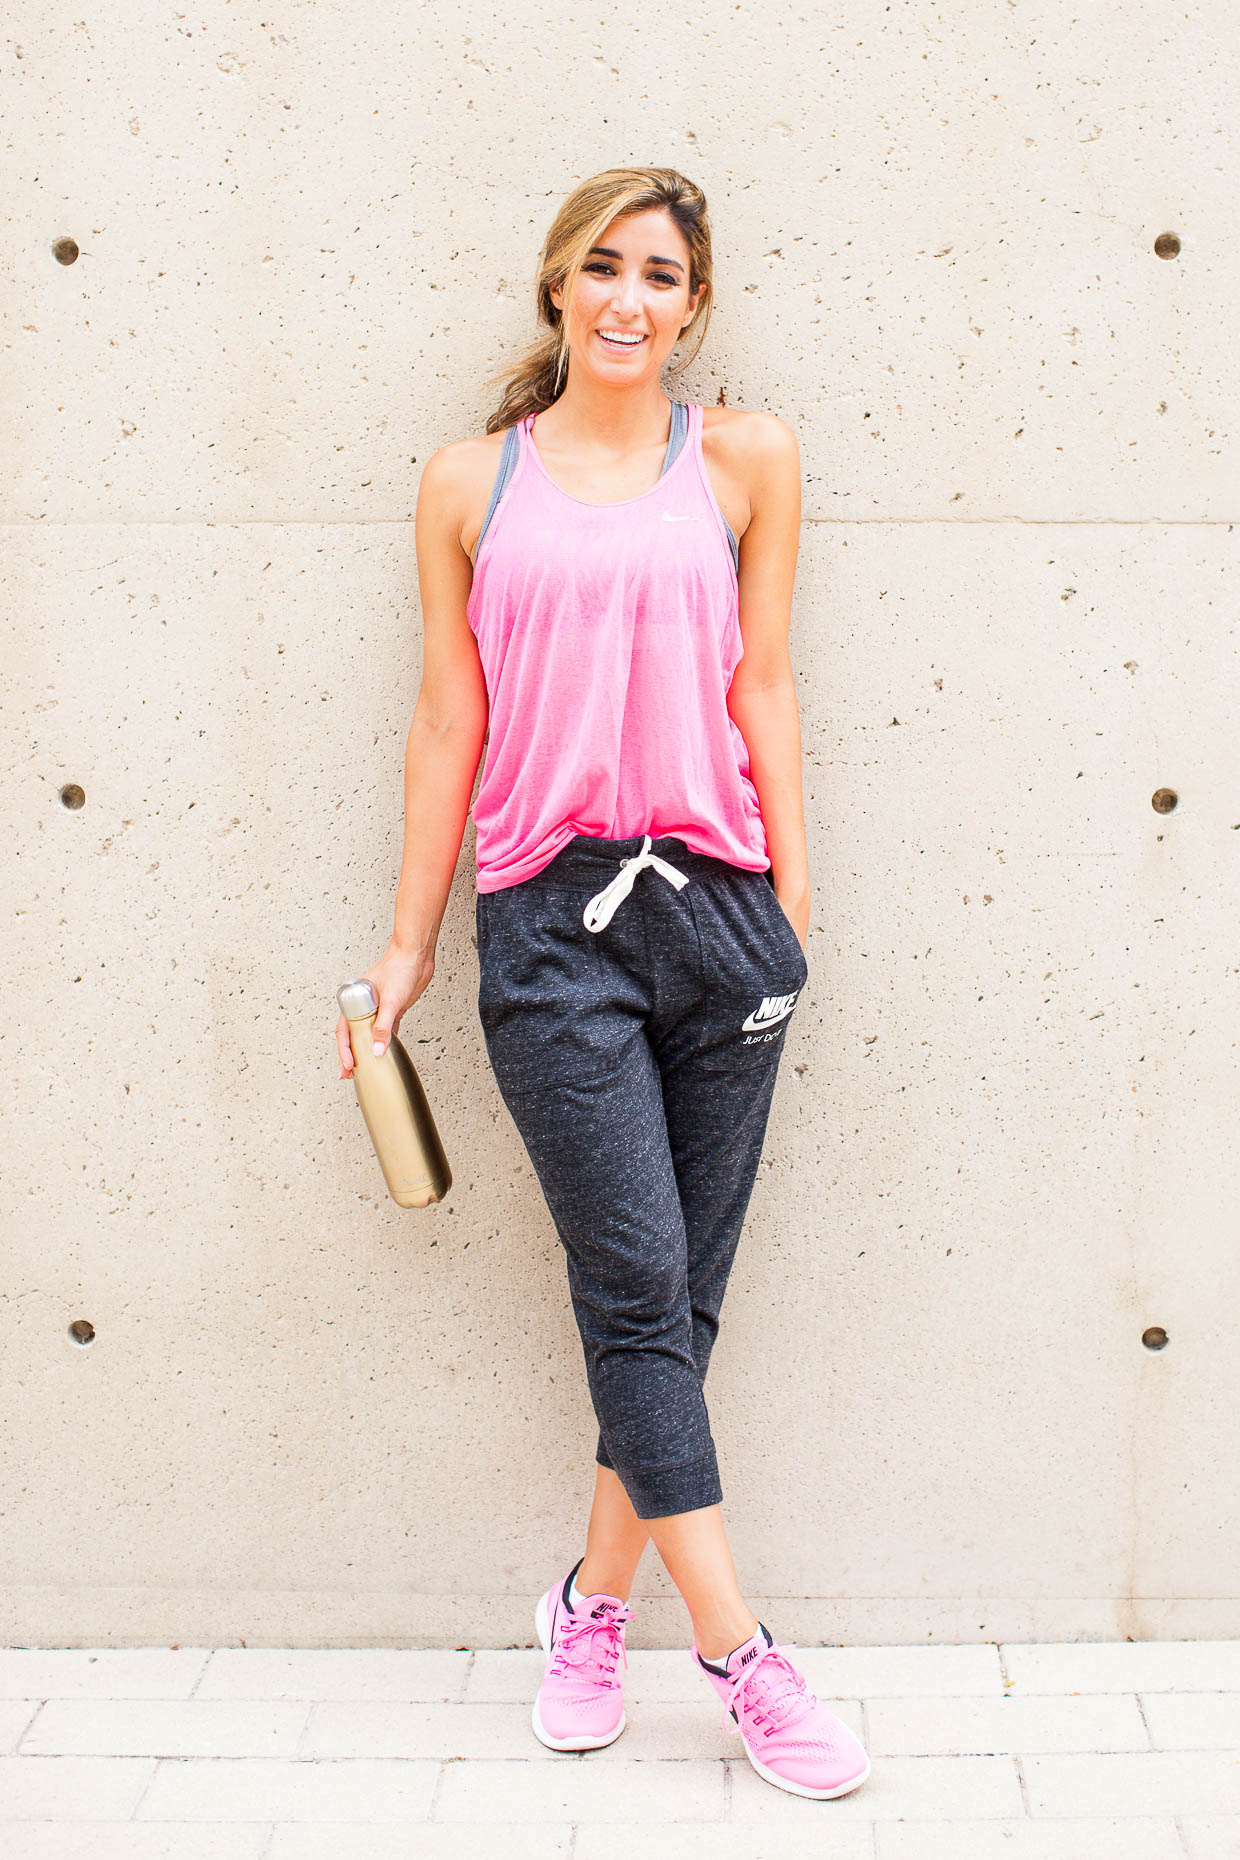 The Darling Detail is sporting Nike 'Gym Vintage' Capris, a Nike 'Pro - Classic' Dri-FIT Padded Sports Bra and a 'Cool Breeze' Racerback Dri-FIT Tank, wearing Nike's 'Free RN' Running Shoes, and using a S'well 'Sparkling Champagne' Stainless Steel Water Bottle.